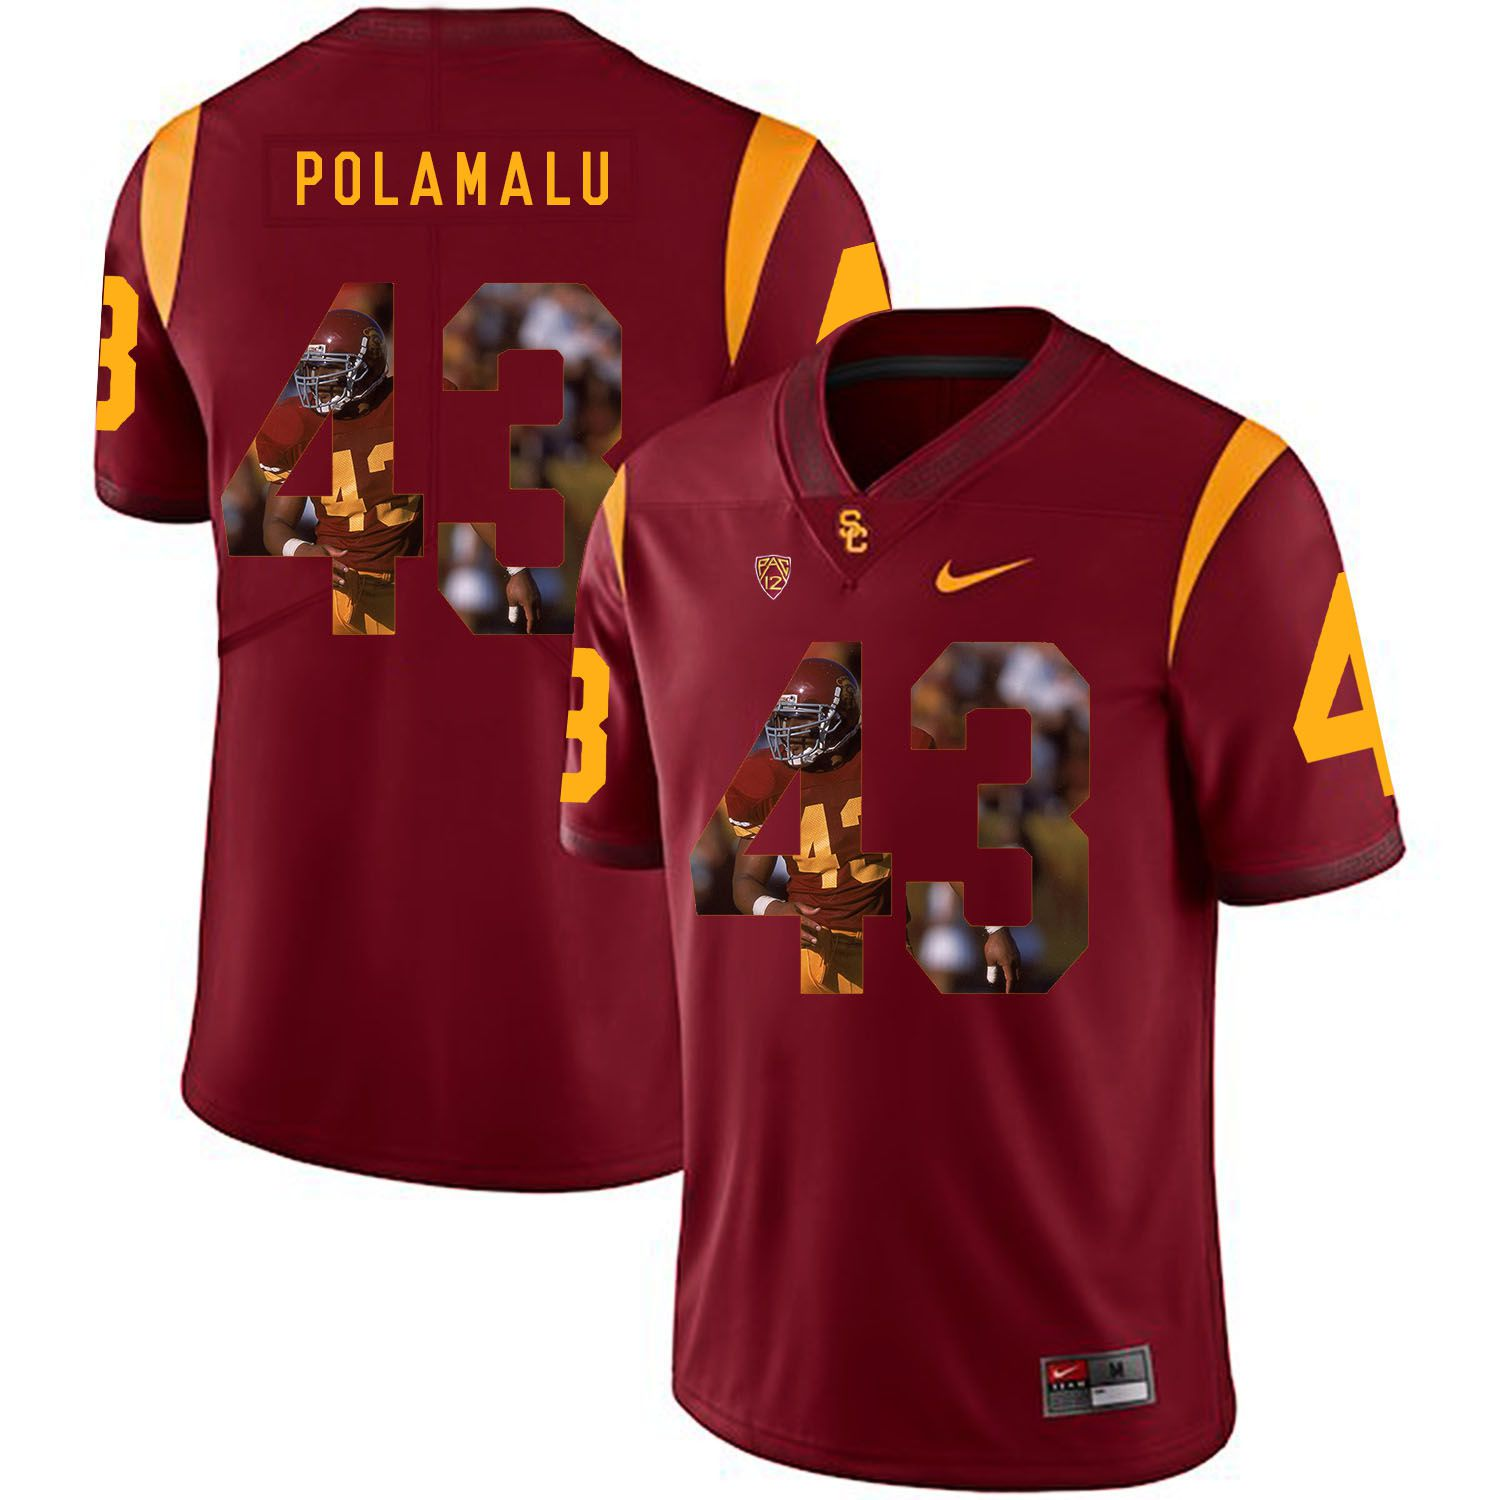 Men USC Trojans 43 Polamalu Red Fashion Edition Customized NCAA Jerseys